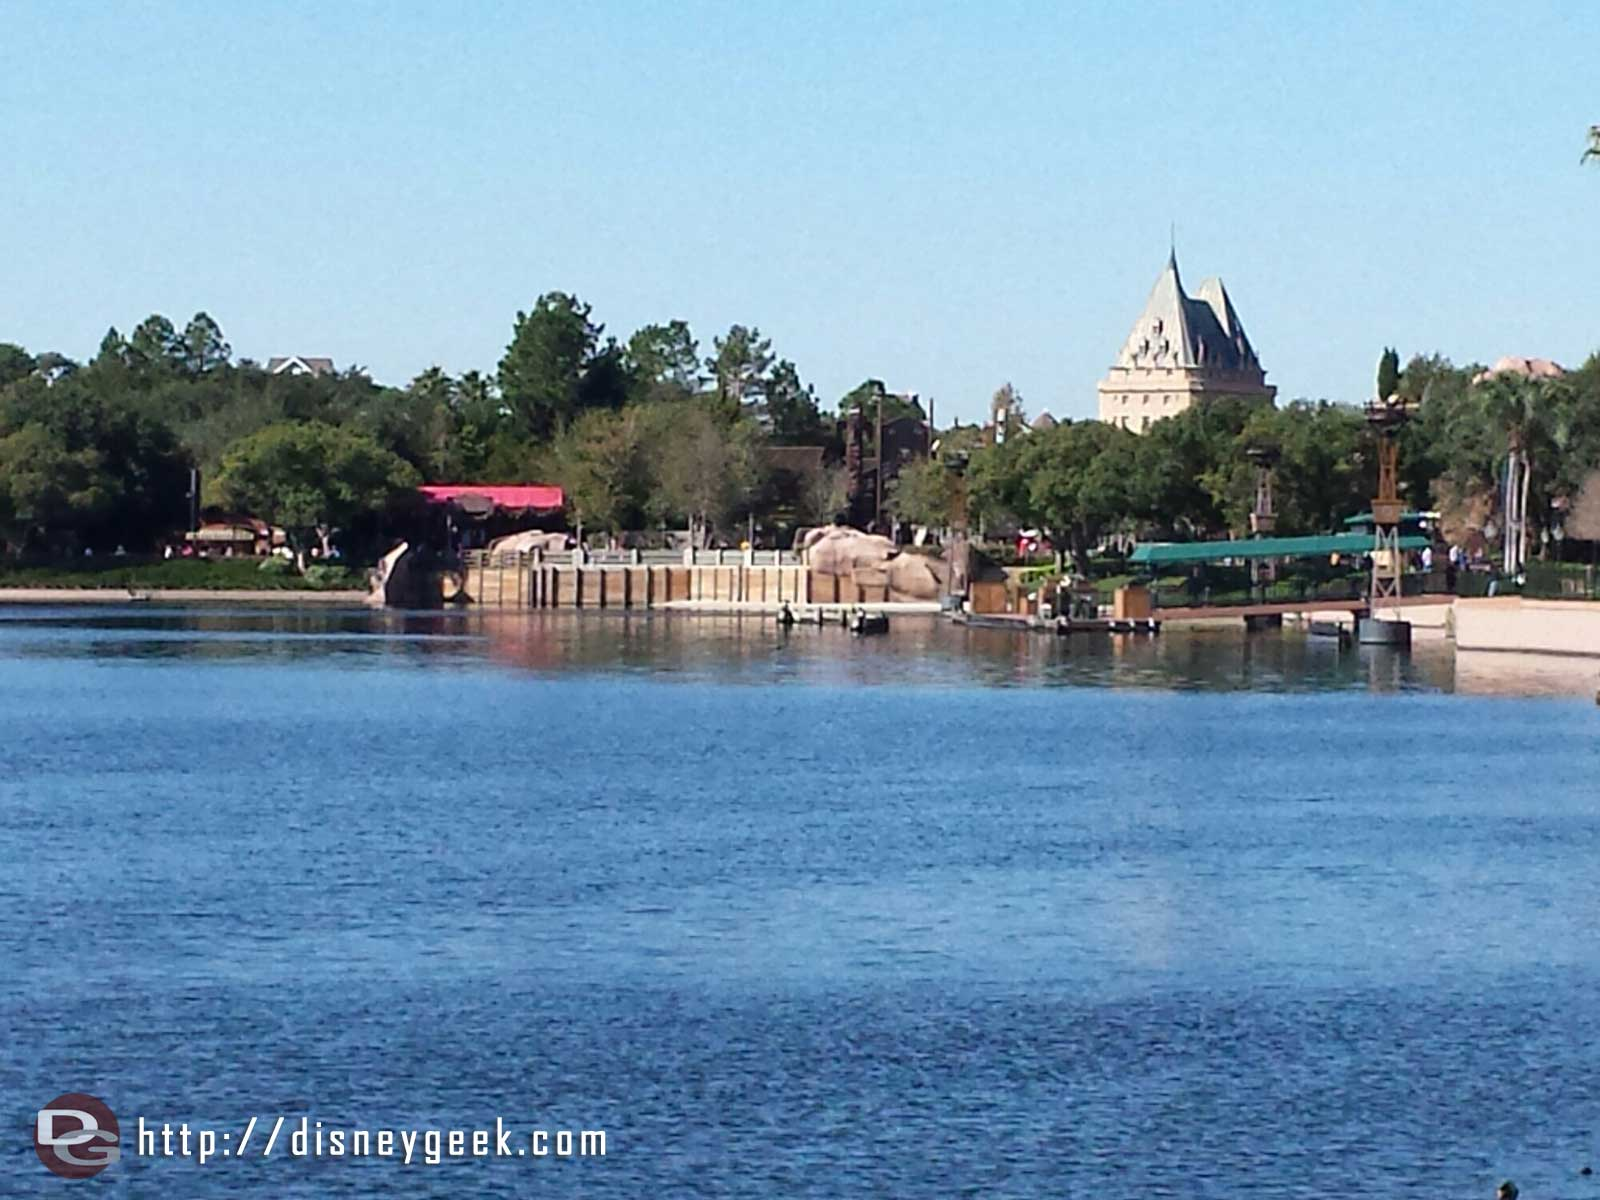 Canada from across the World Showcase lagoon #Epcot